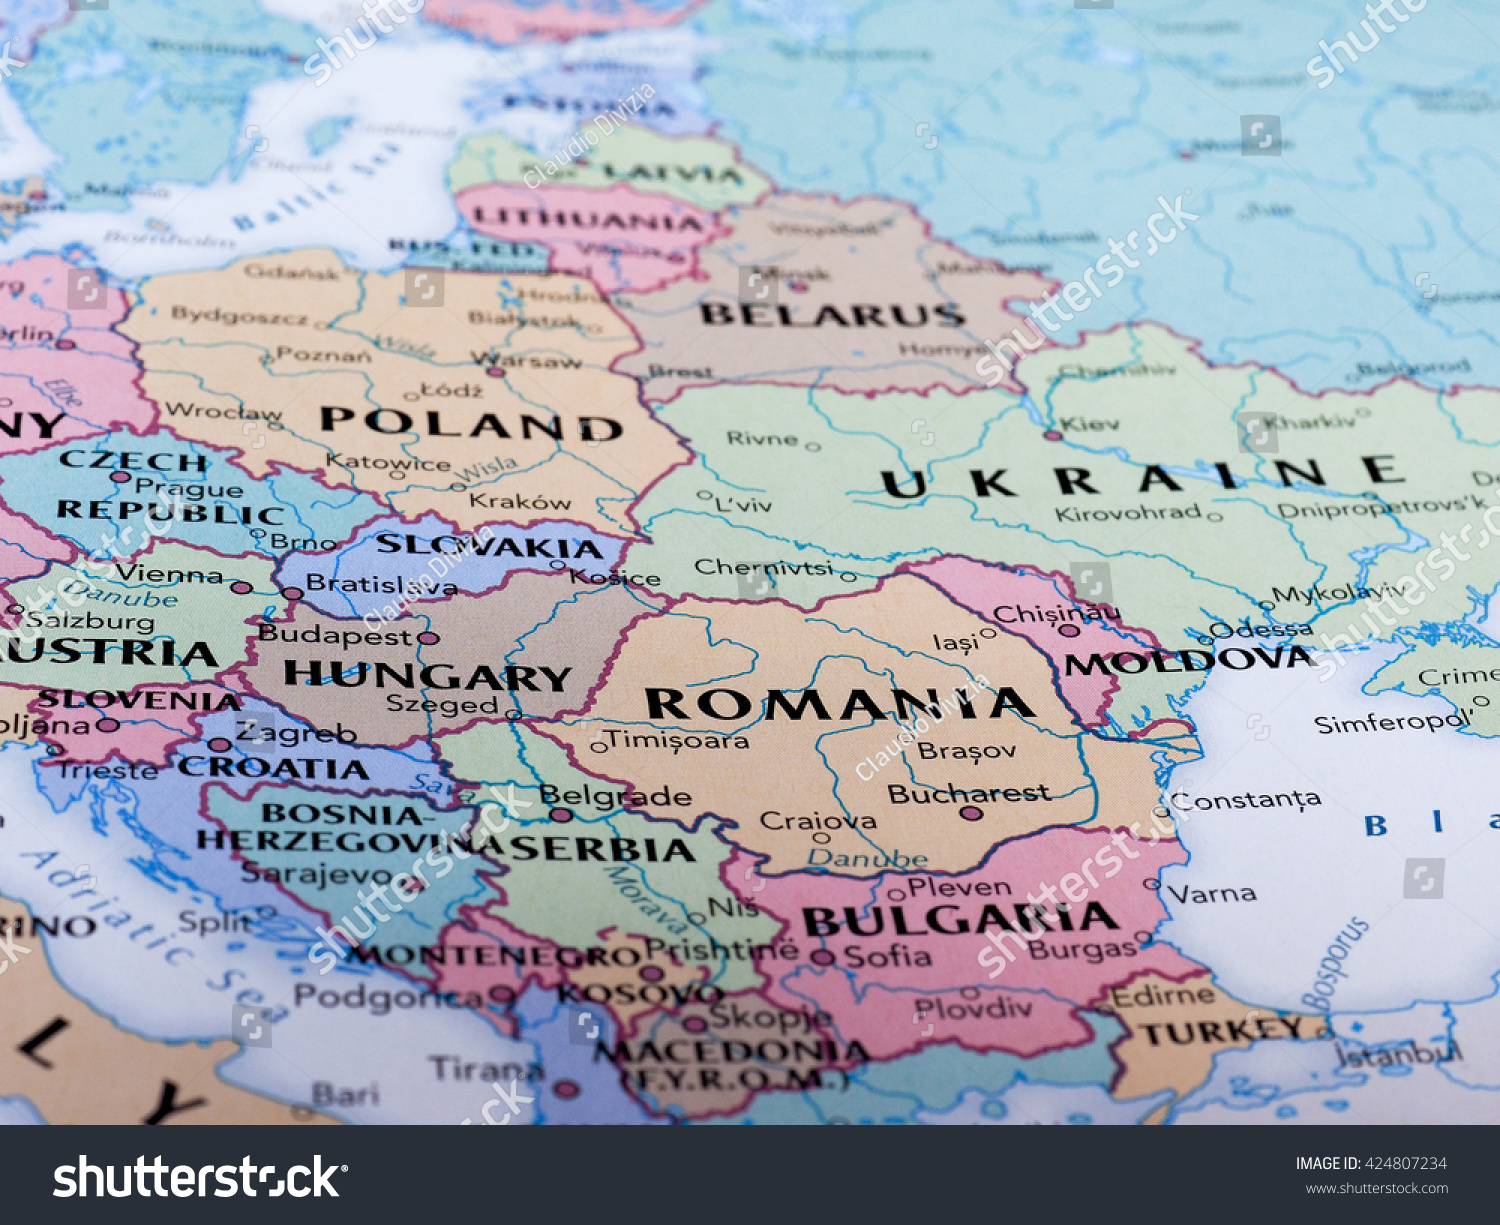 World map image with country names hd picture ideas references world map image with country names hd world map with country name hd image world map gumiabroncs Images